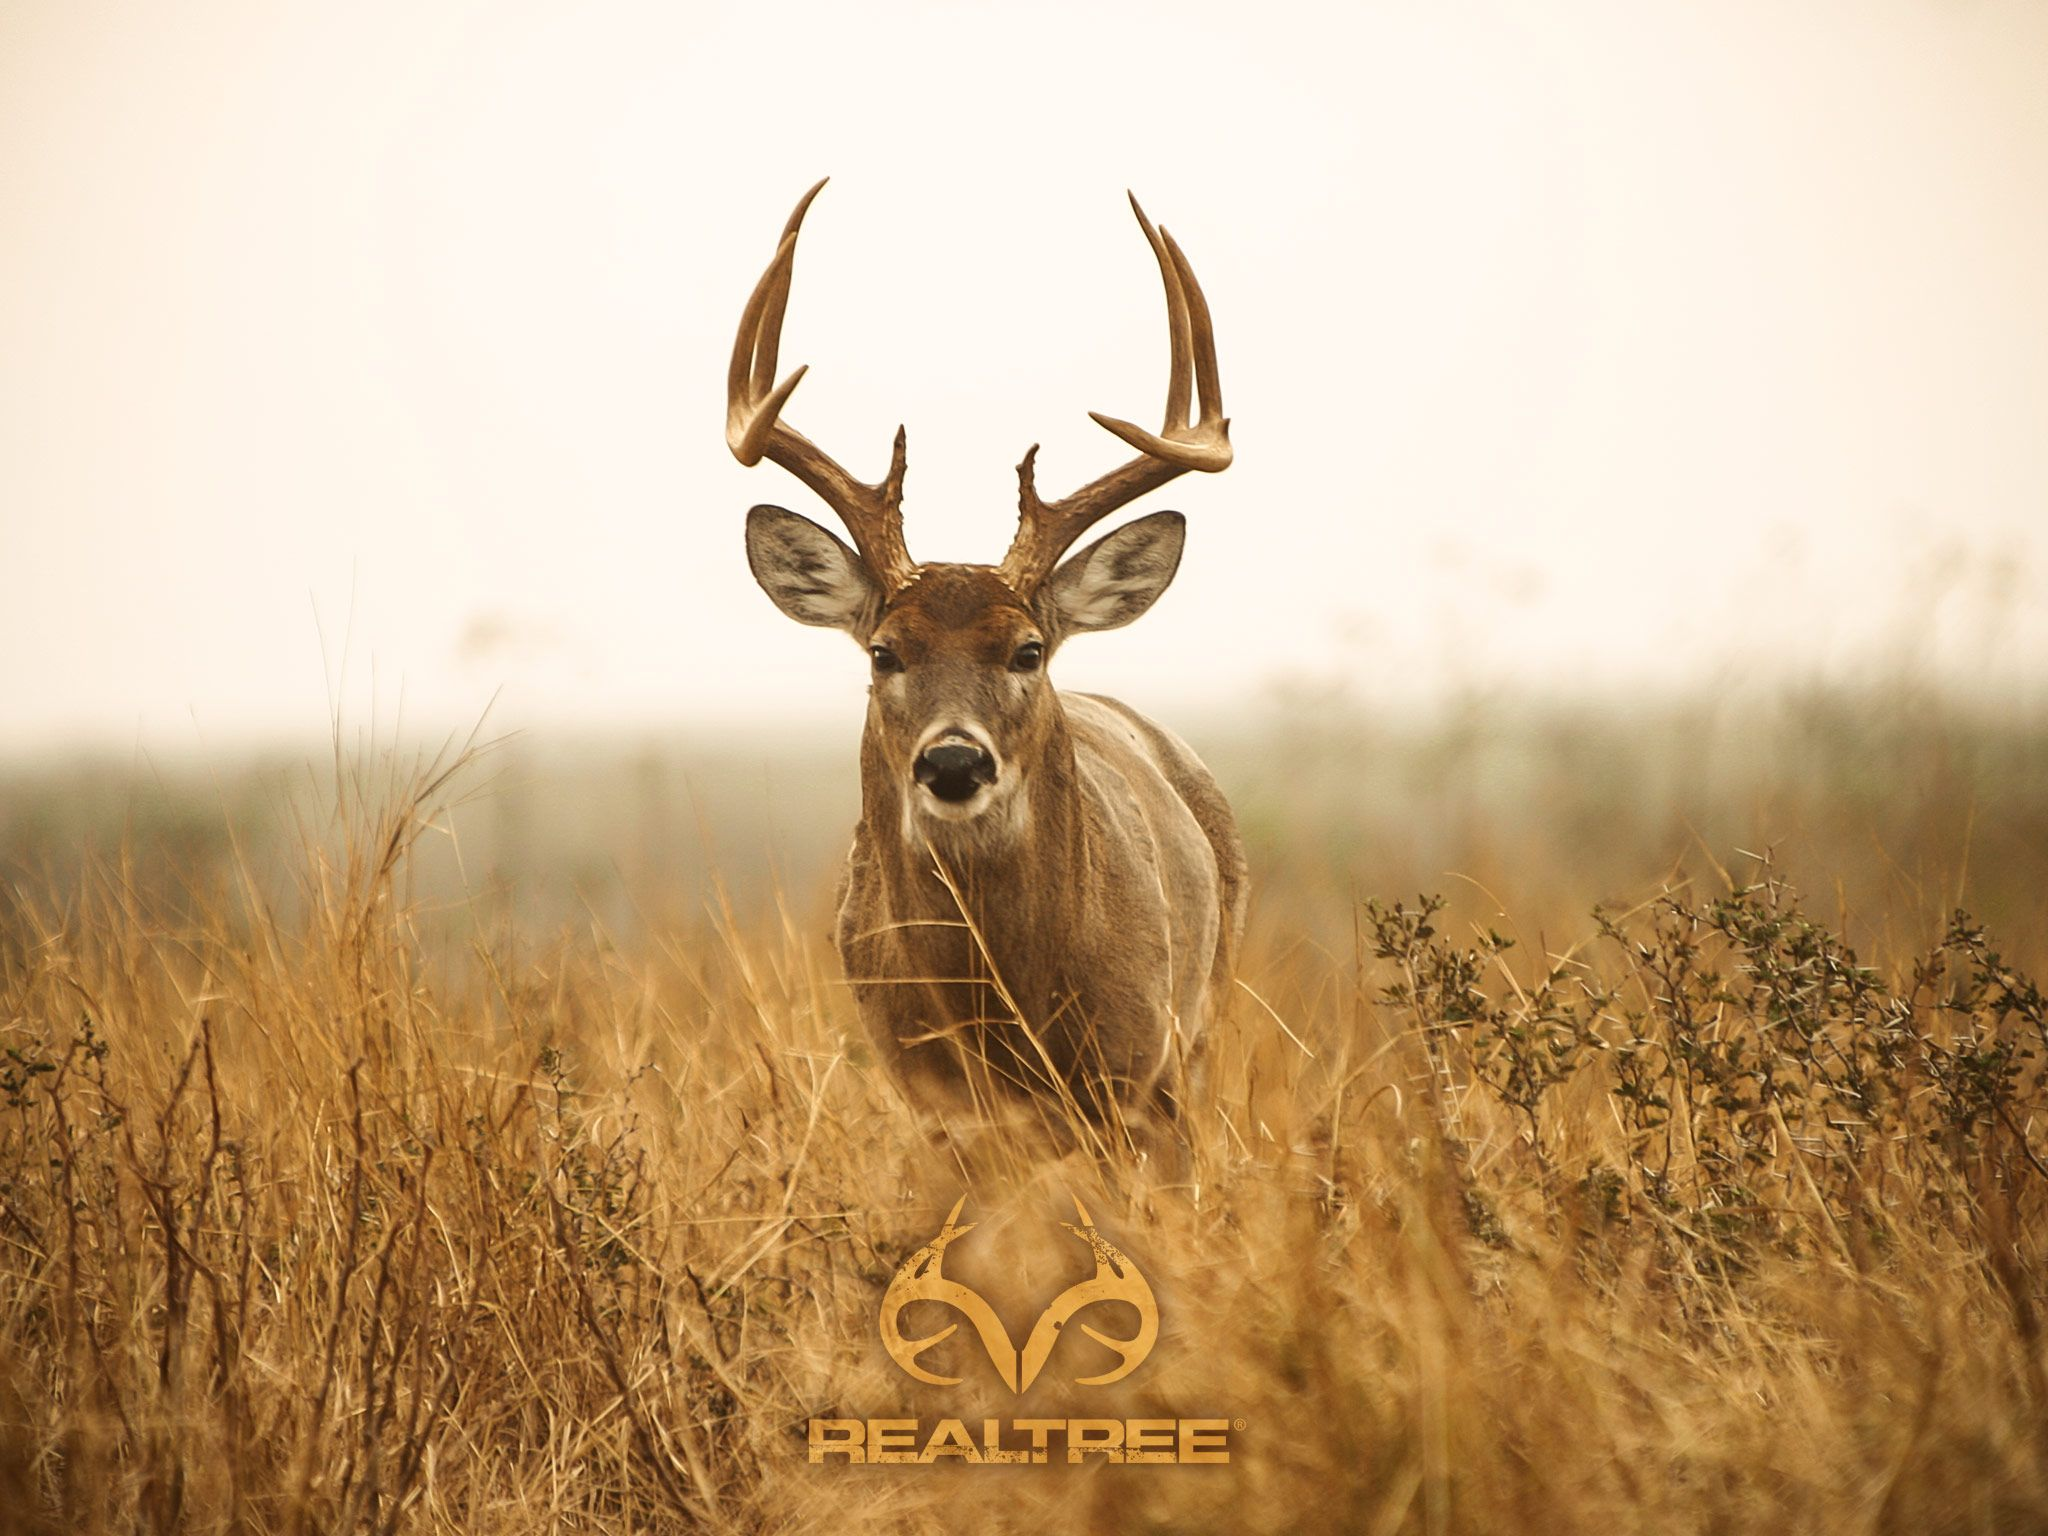 3007ca531a2f4 2048x1536 Deer Hunting Desktop. | Decor | Pinterest | Hunting wallpaper and  .